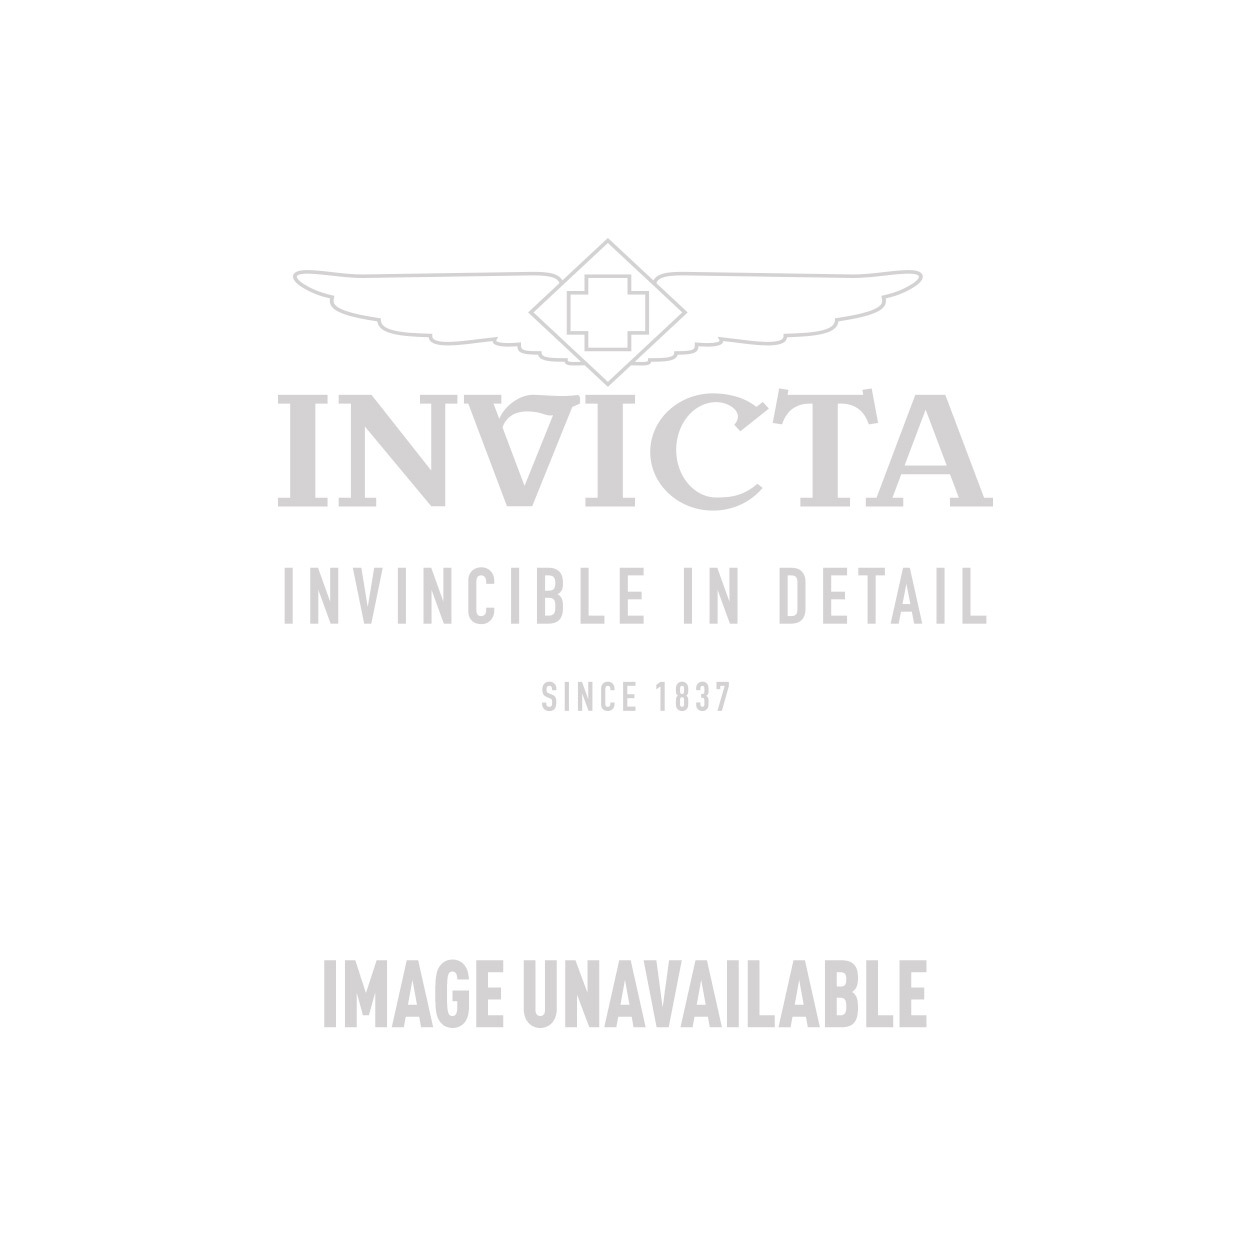 Invicta Speedway Quartz Watch - Gold case with Gold tone Stainless Steel band - Model 17312